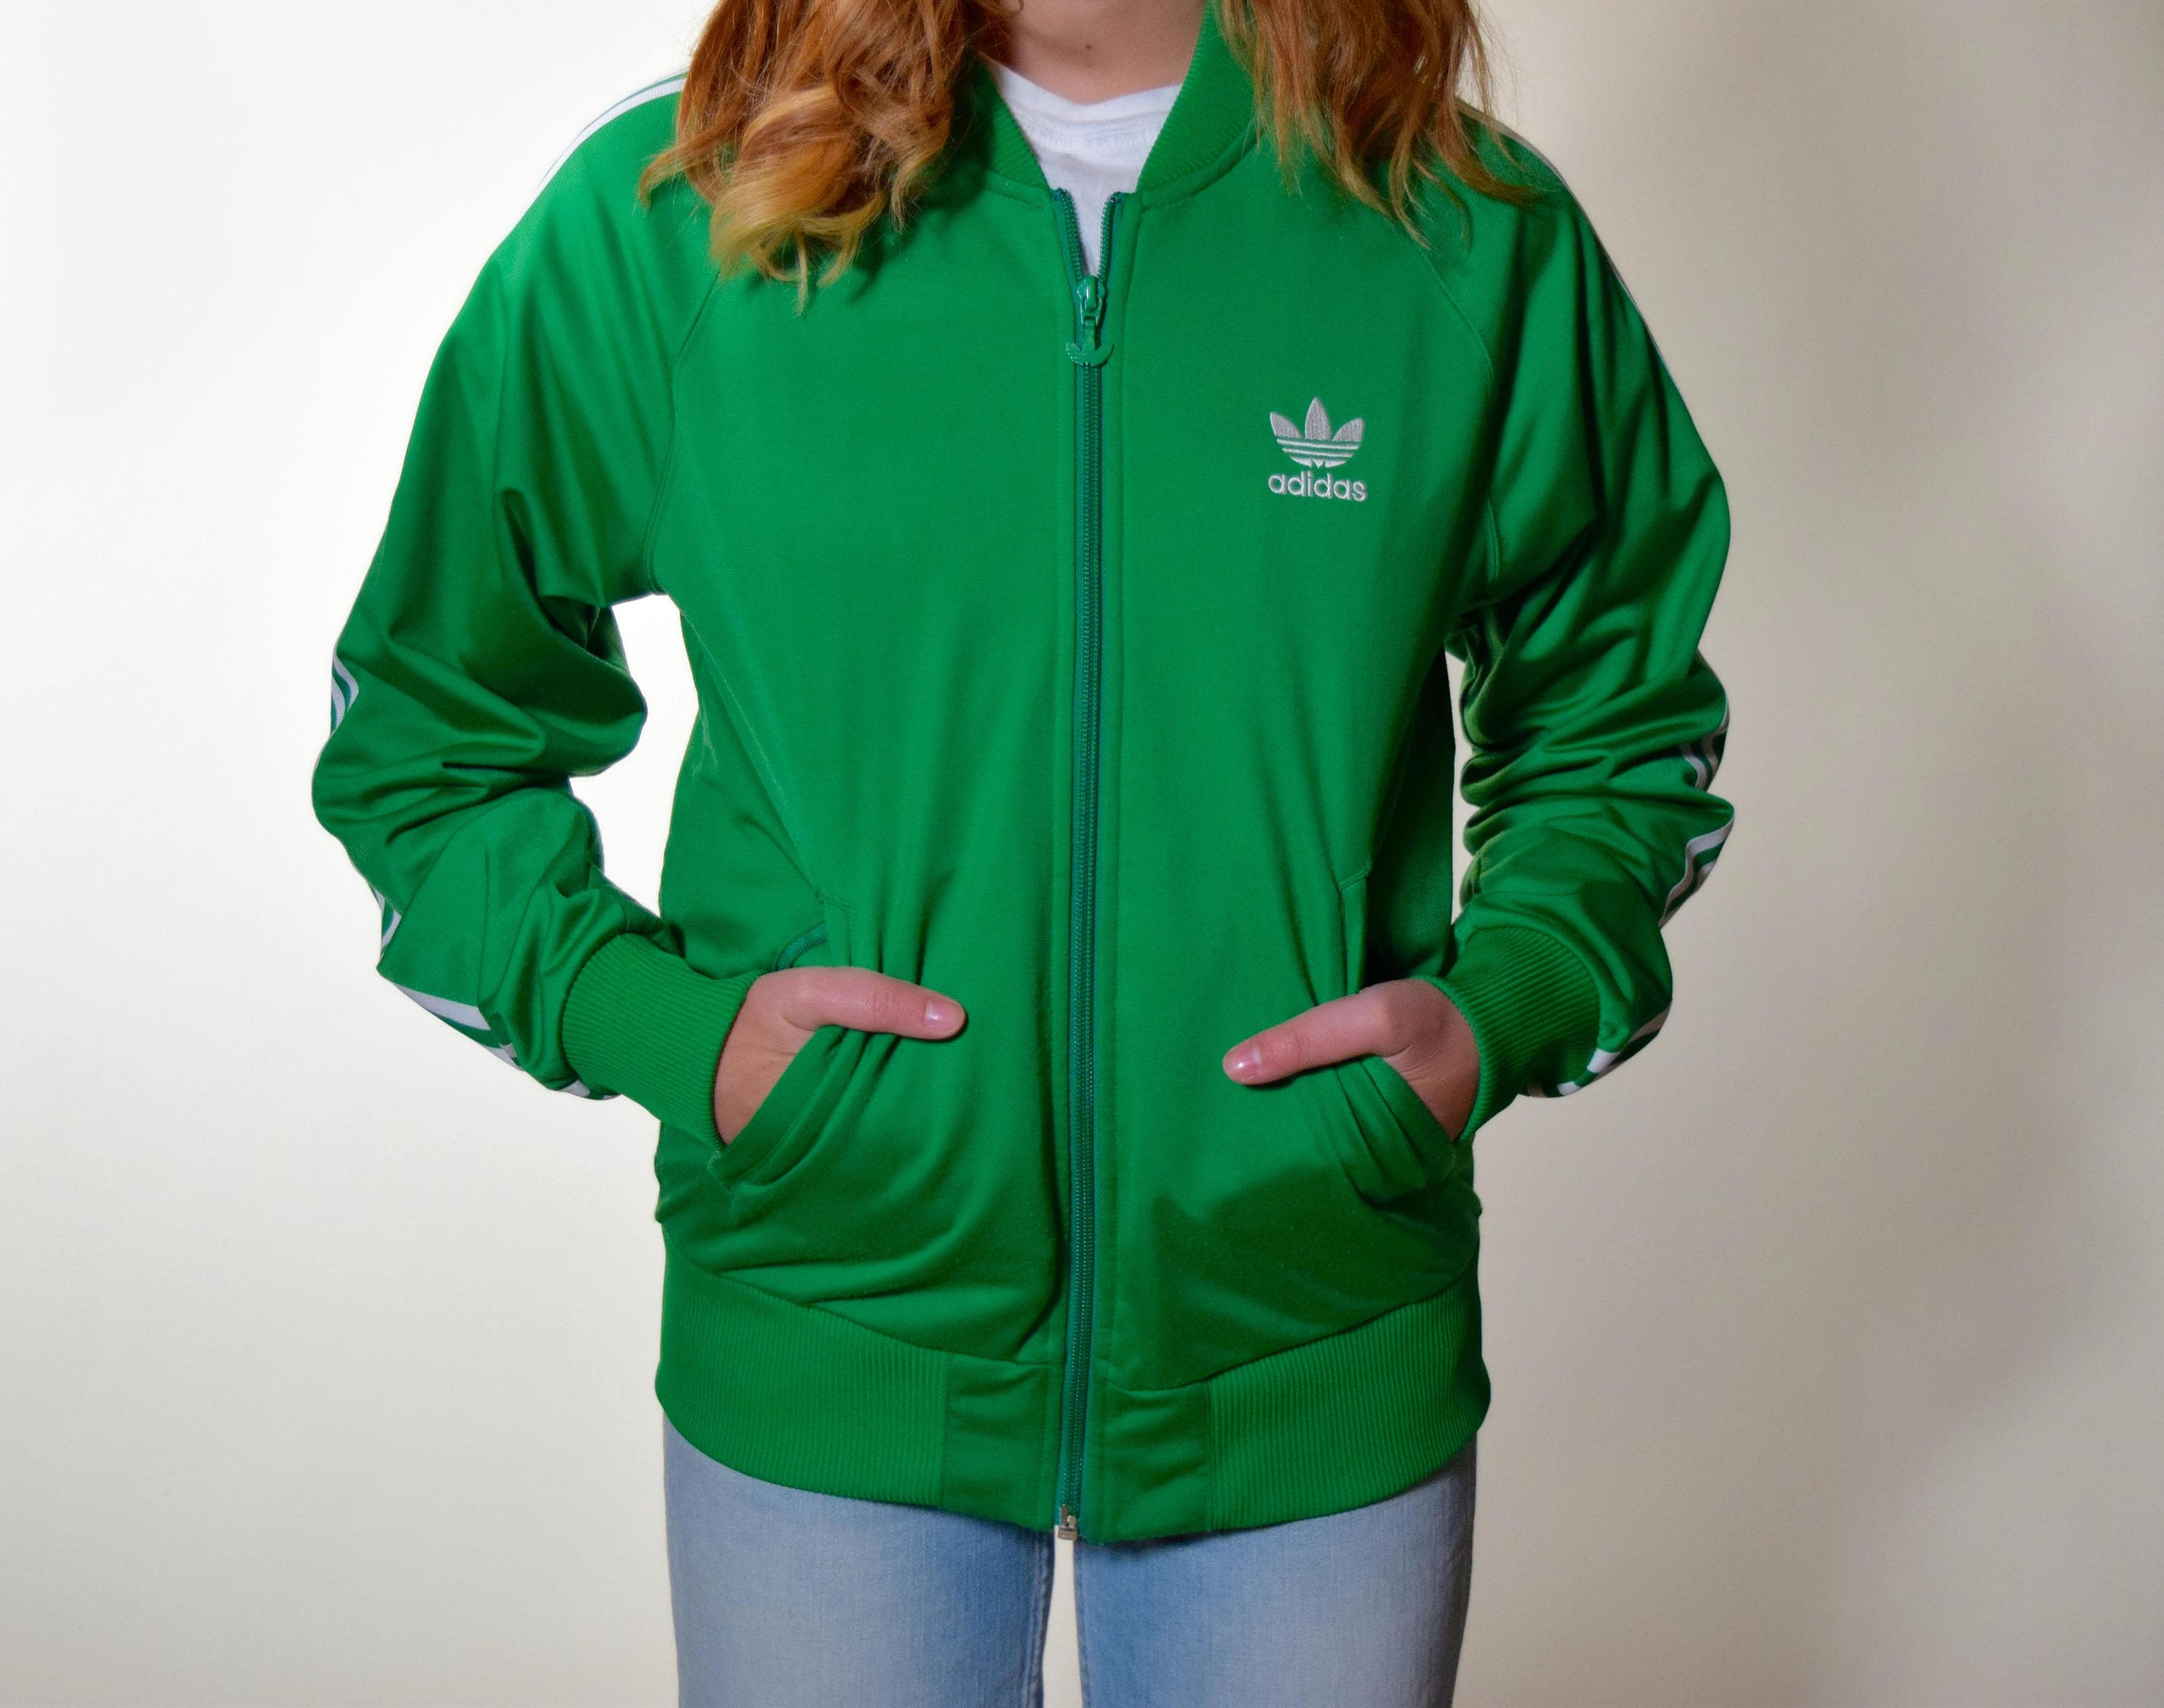 Vintage Adidas Green And White Stripe Track Zip Up Track